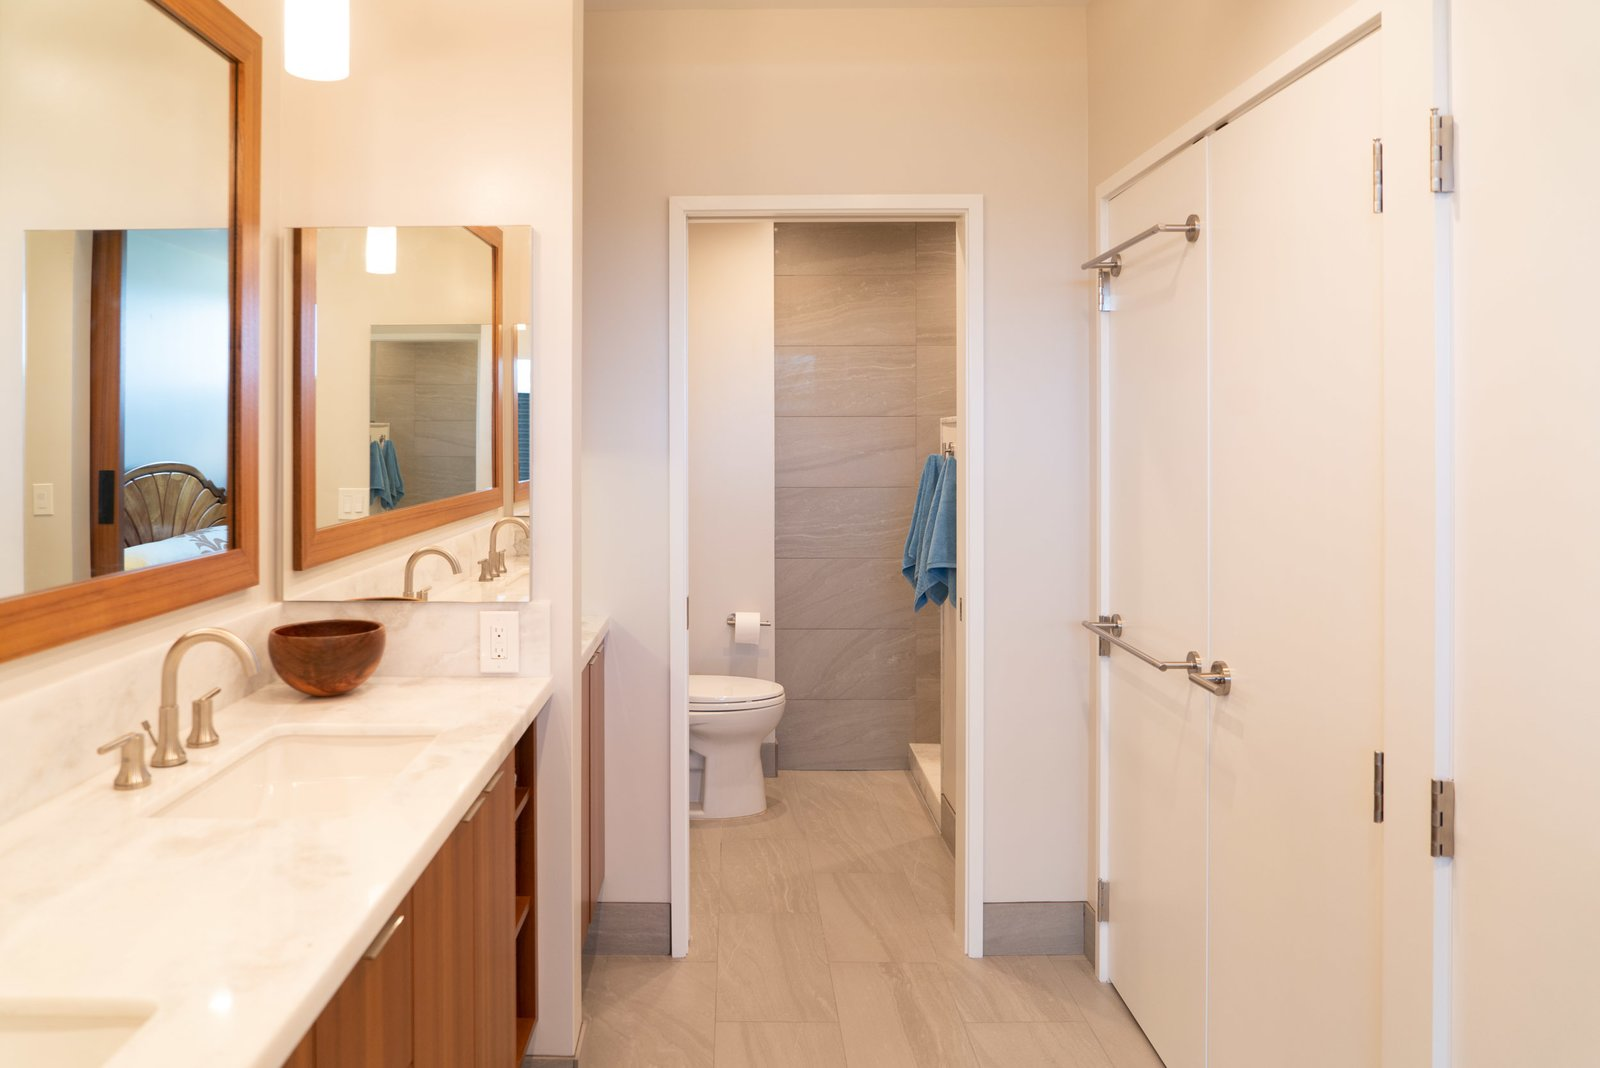 Bath Room, Granite Counter, Ceramic Tile Floor, Recessed Lighting, Accent Lighting, Ceiling Lighting, Pendant Lighting, Undermount Sink, and Open Shower  Scott Residence by District Architecture + Design